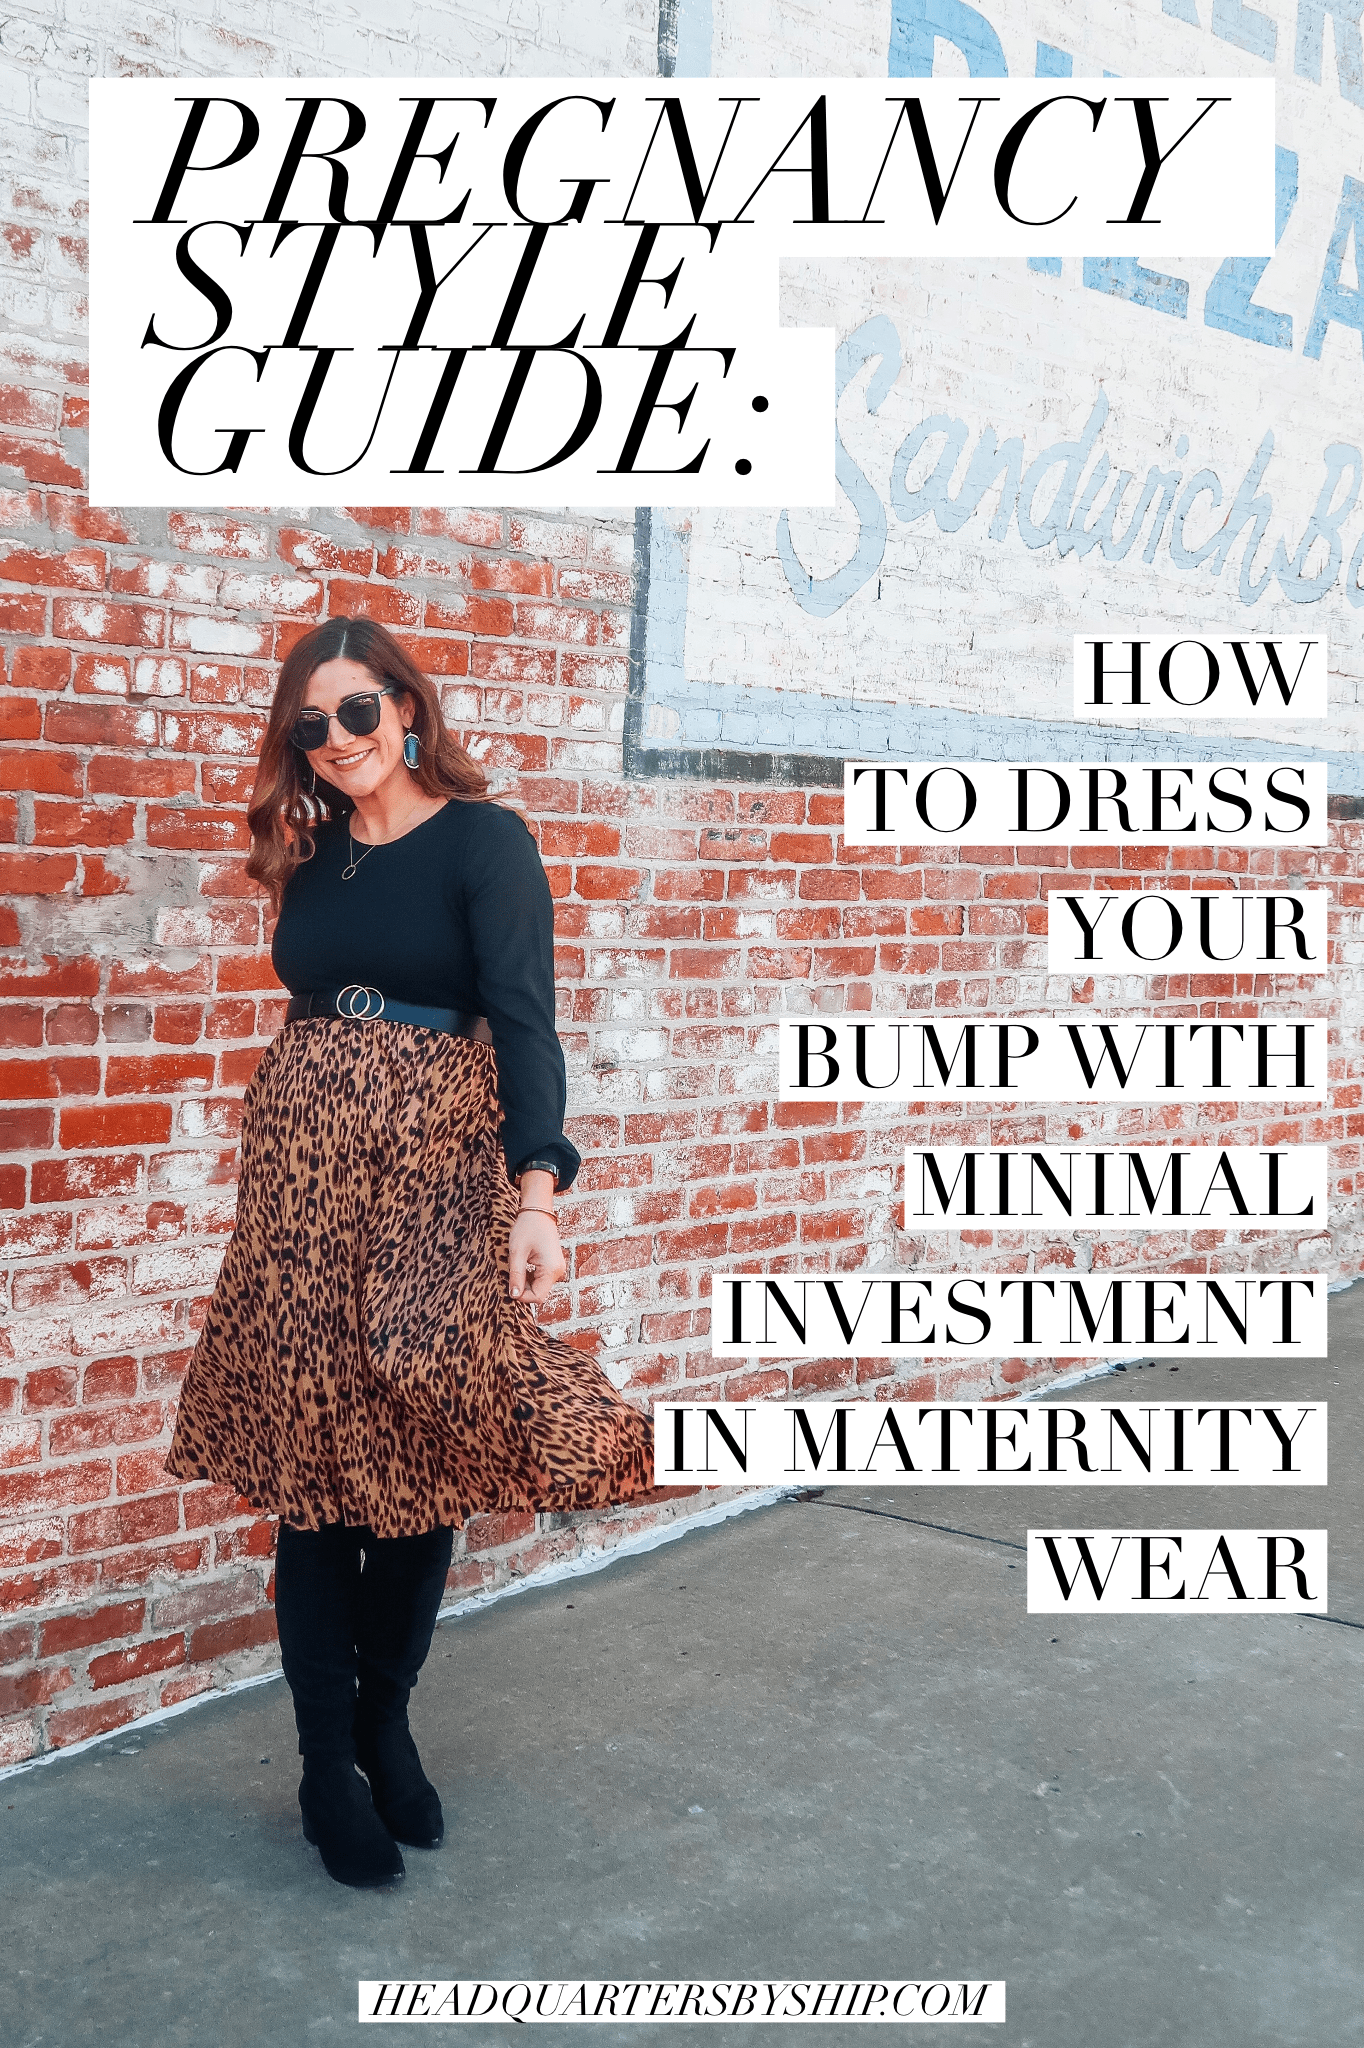 Pregnancy Style Guide | How to Dress Your Bump With Minimal Investment in Maternity Wear